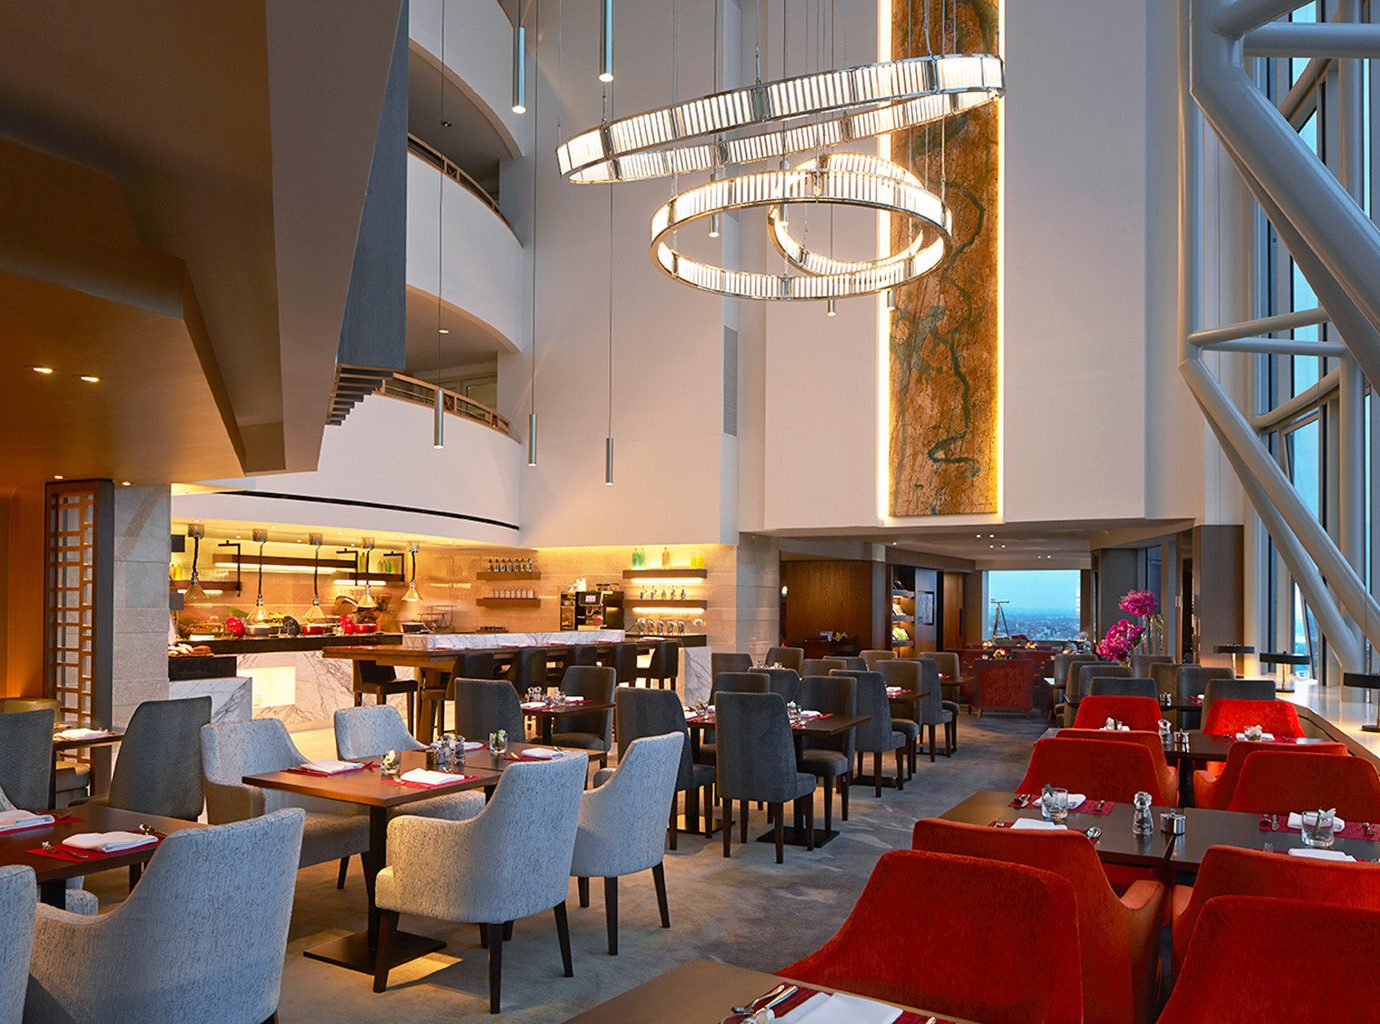 Interior of Altitude at Shangri-La, Sydney, Australia